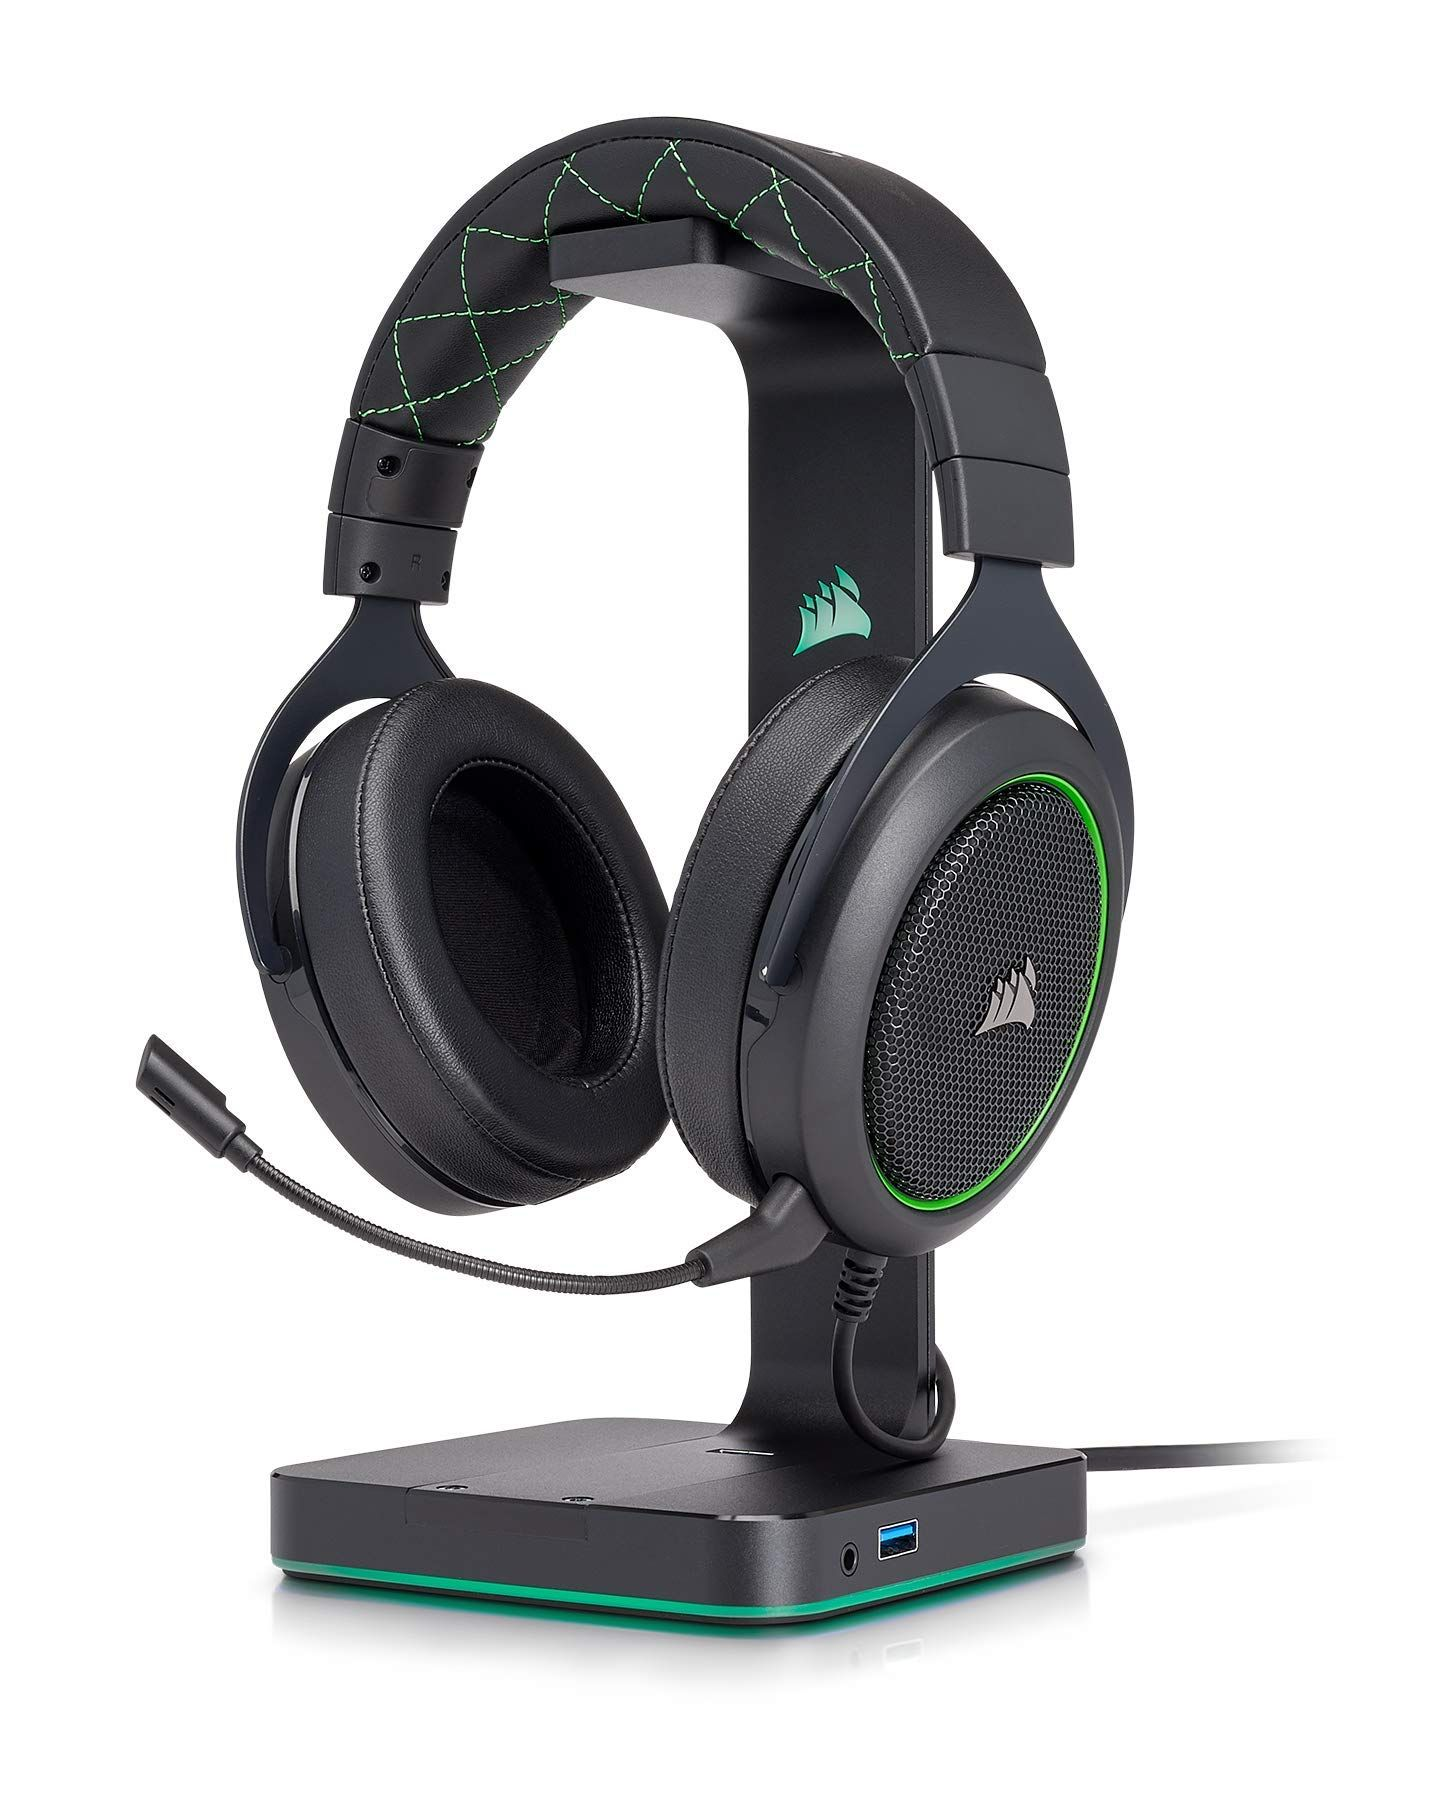 Corsair Hs50 Stereo Gaming Headset Discord Certified Headphones Designed To Work With Xbox One Green Gamin Headphones Design Gaming Headset Headphones